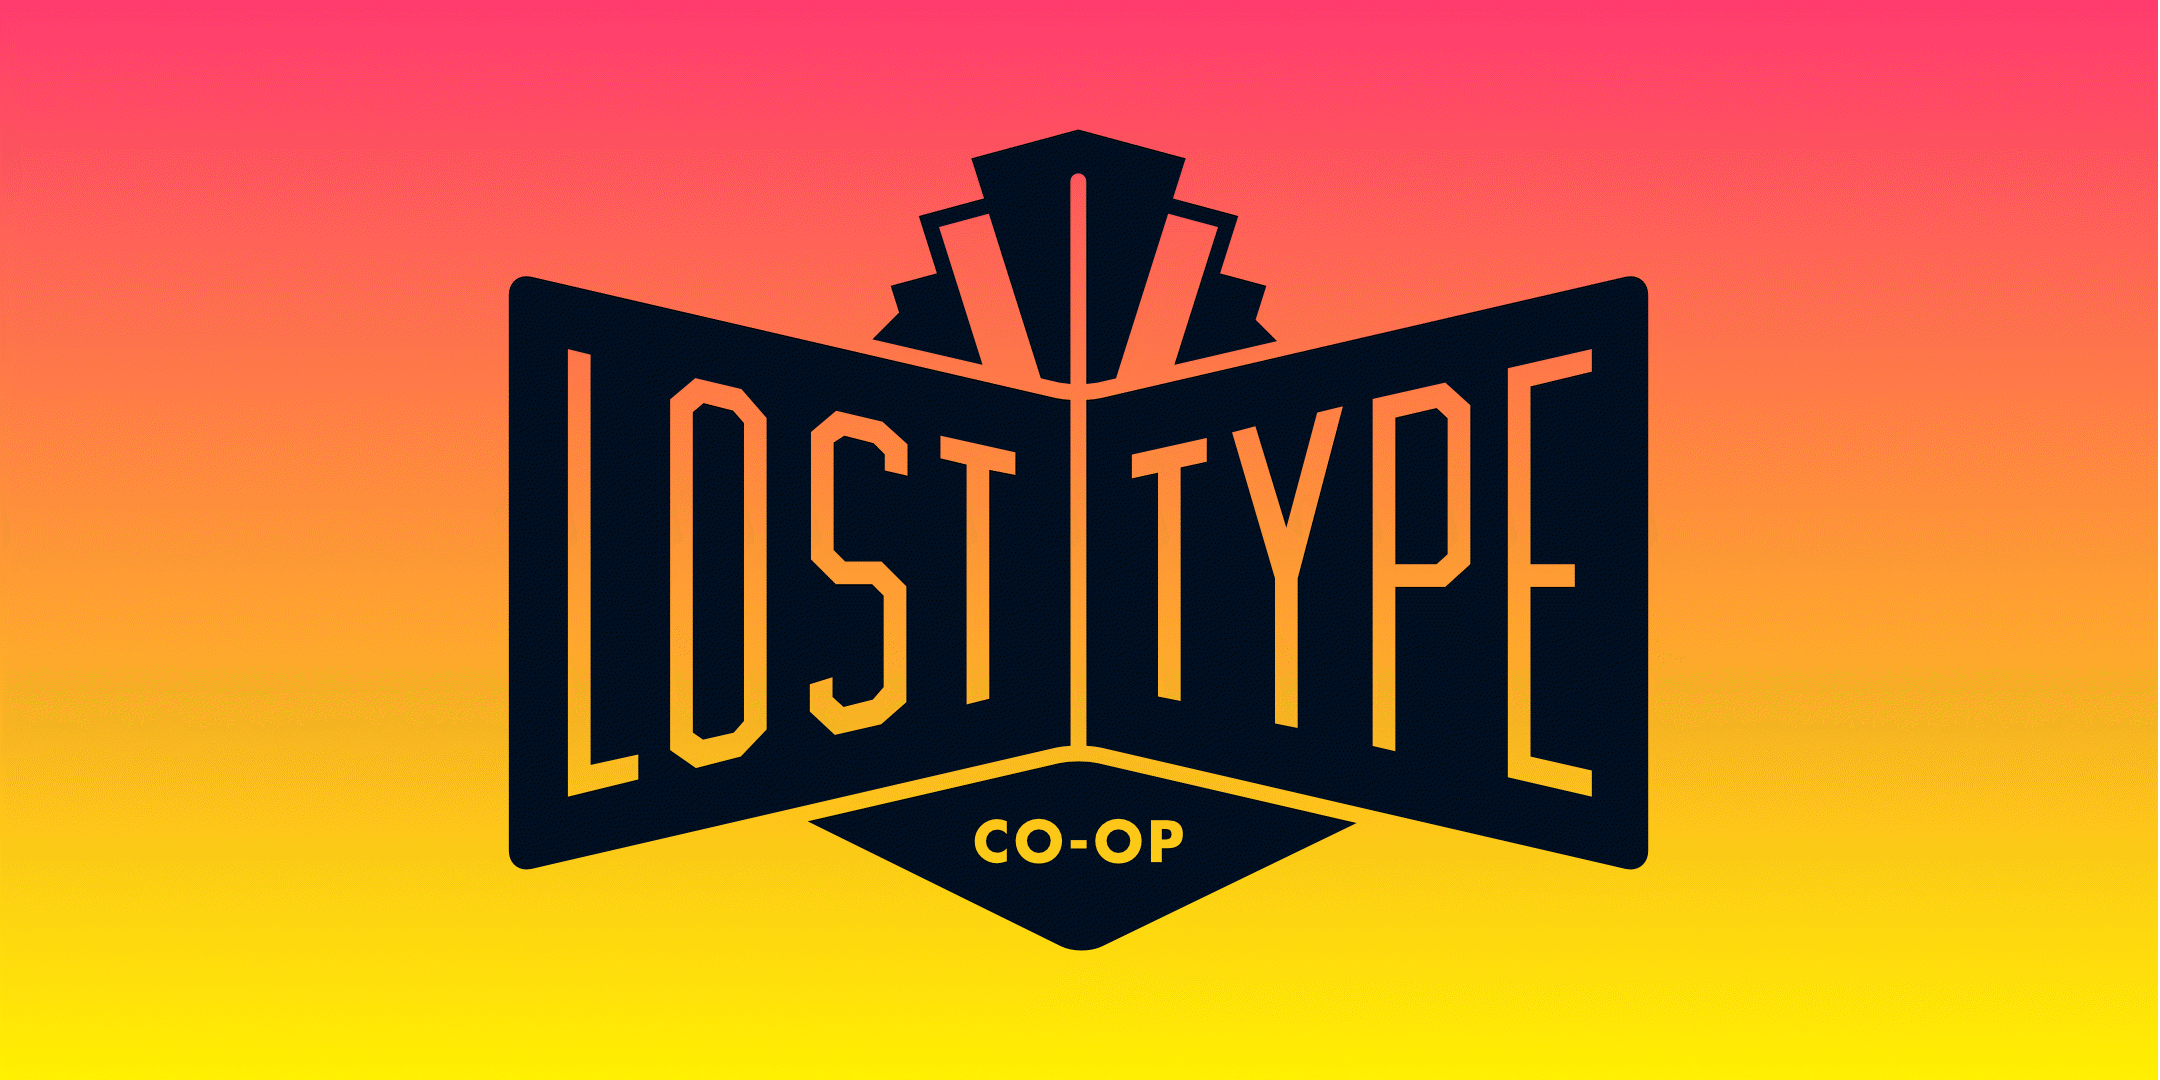 The Lost Type logo on a gradient background.